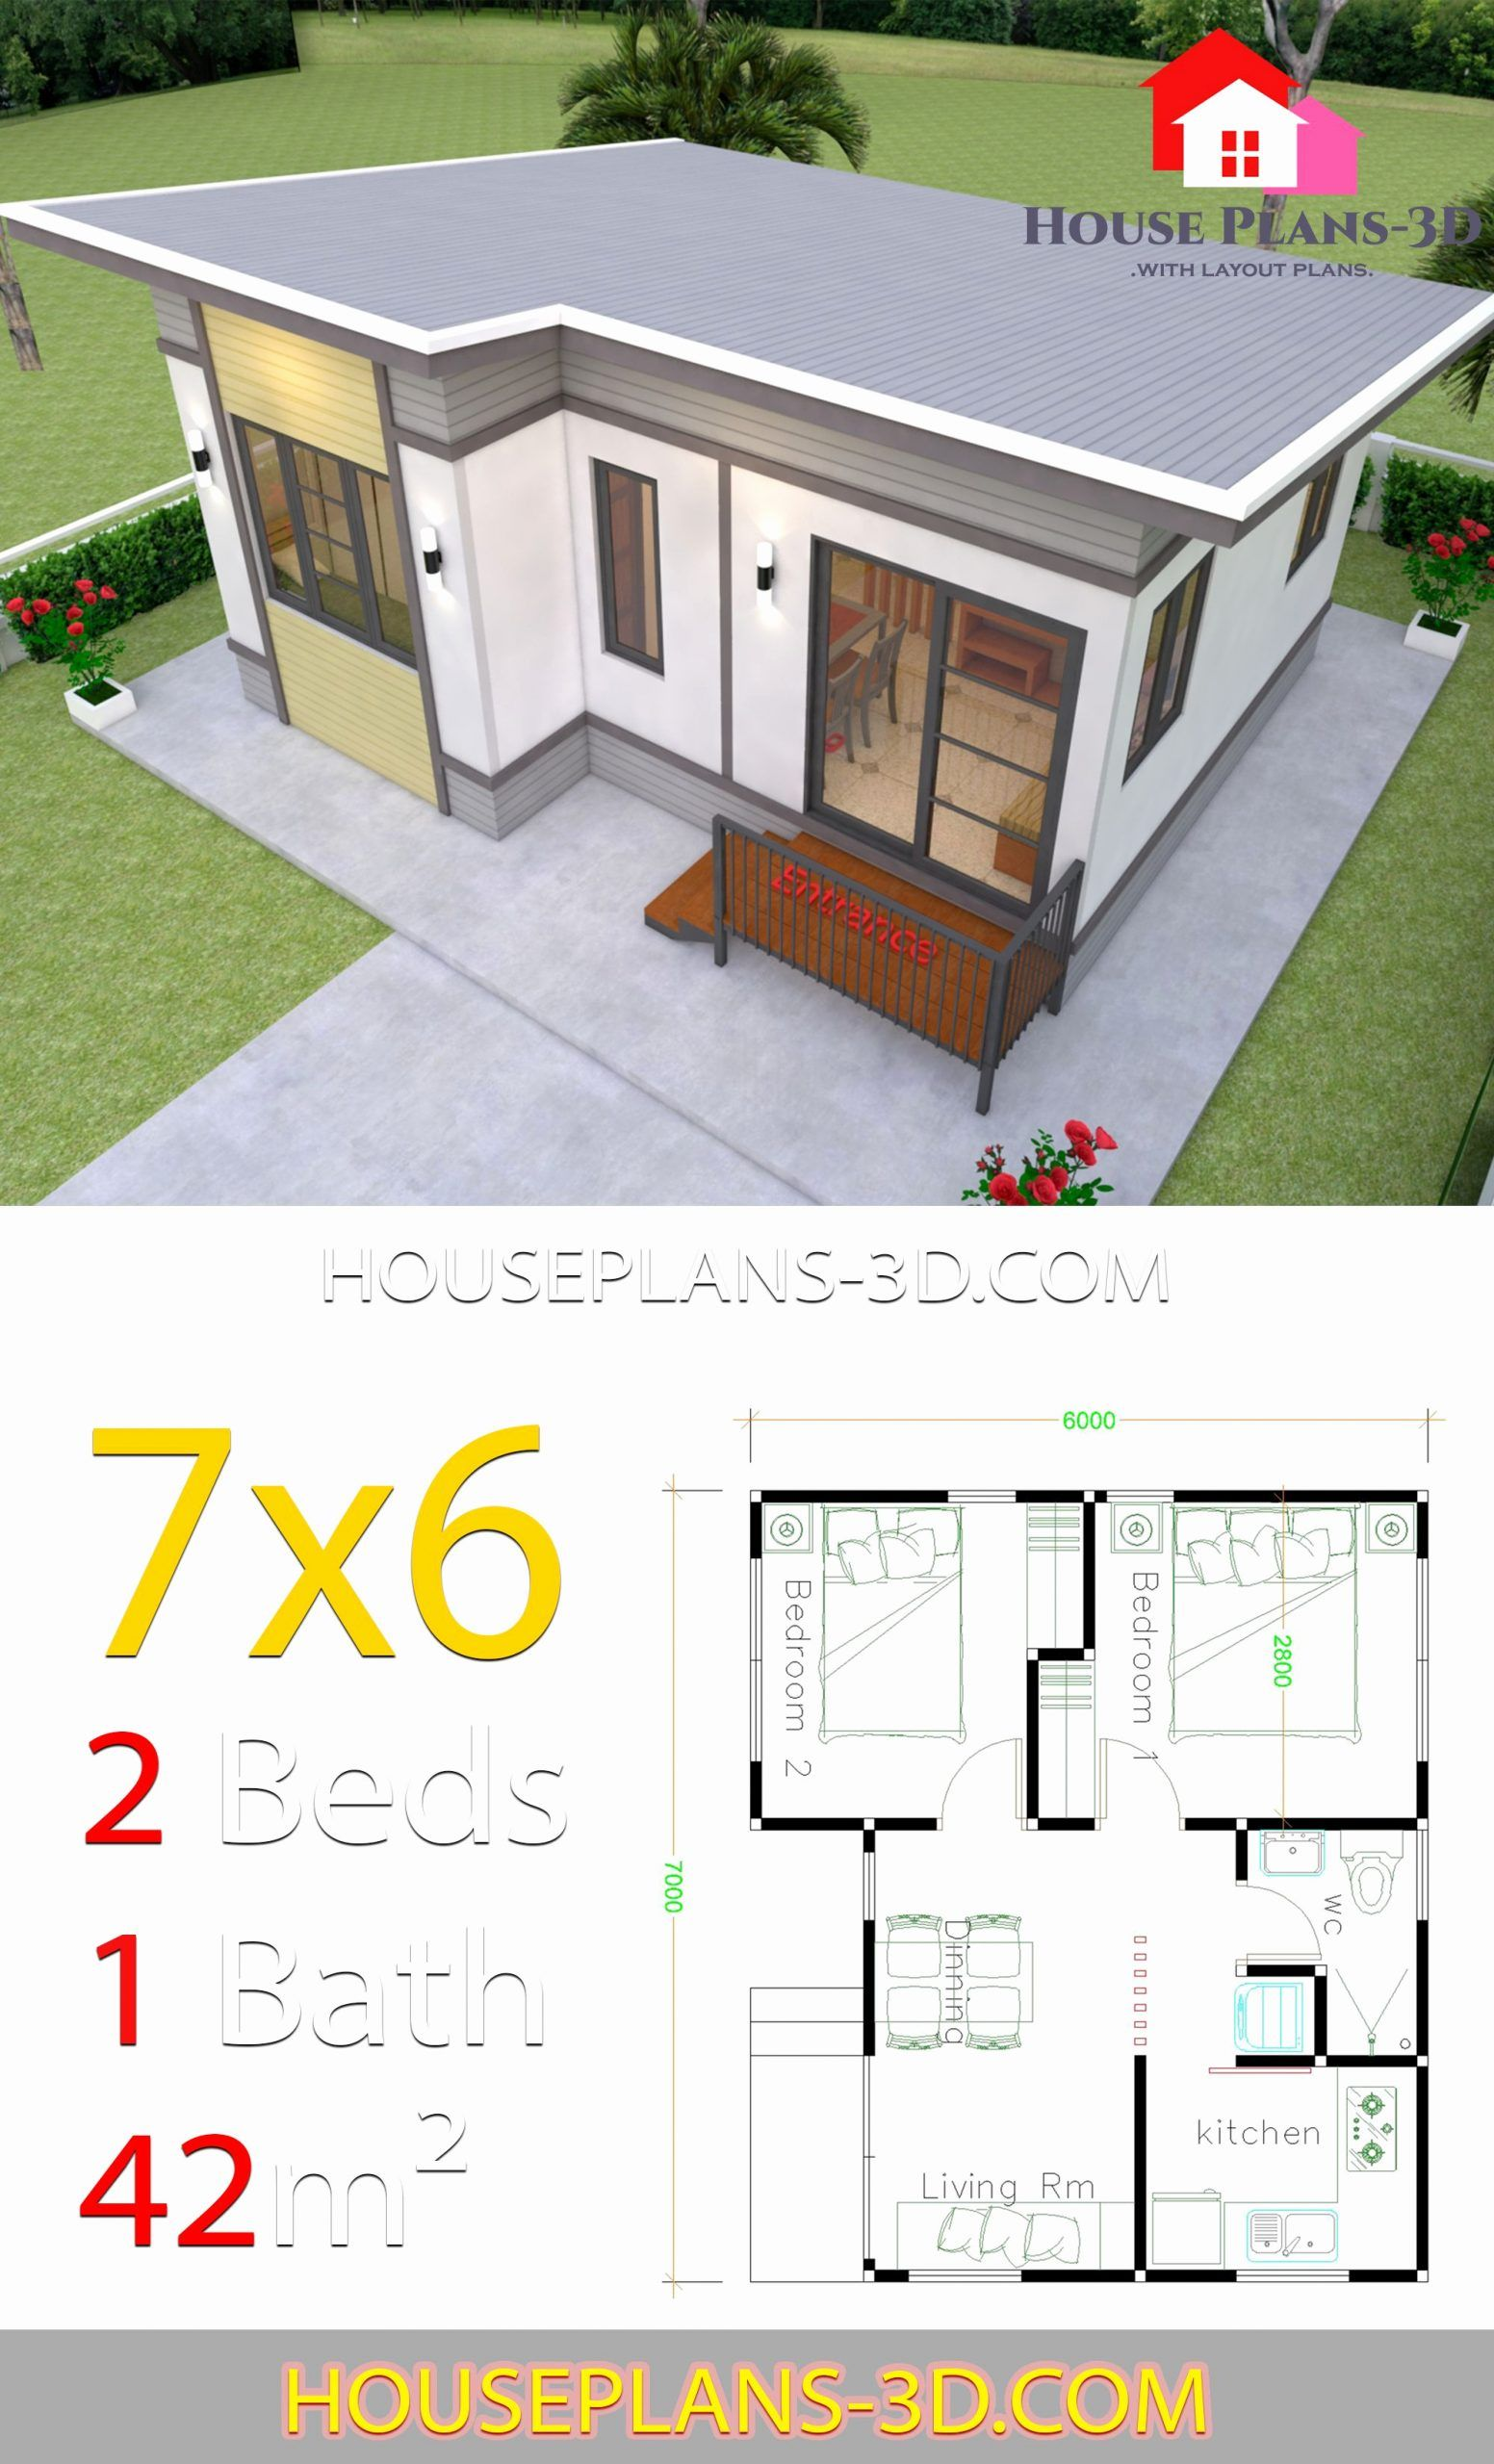 3d 2 Bedroom House Plans Fresh Small House Plans 7x6 With 2 Bedrooms House Plans 3d In 2020 Small House Plans House Construction Plan House Plans